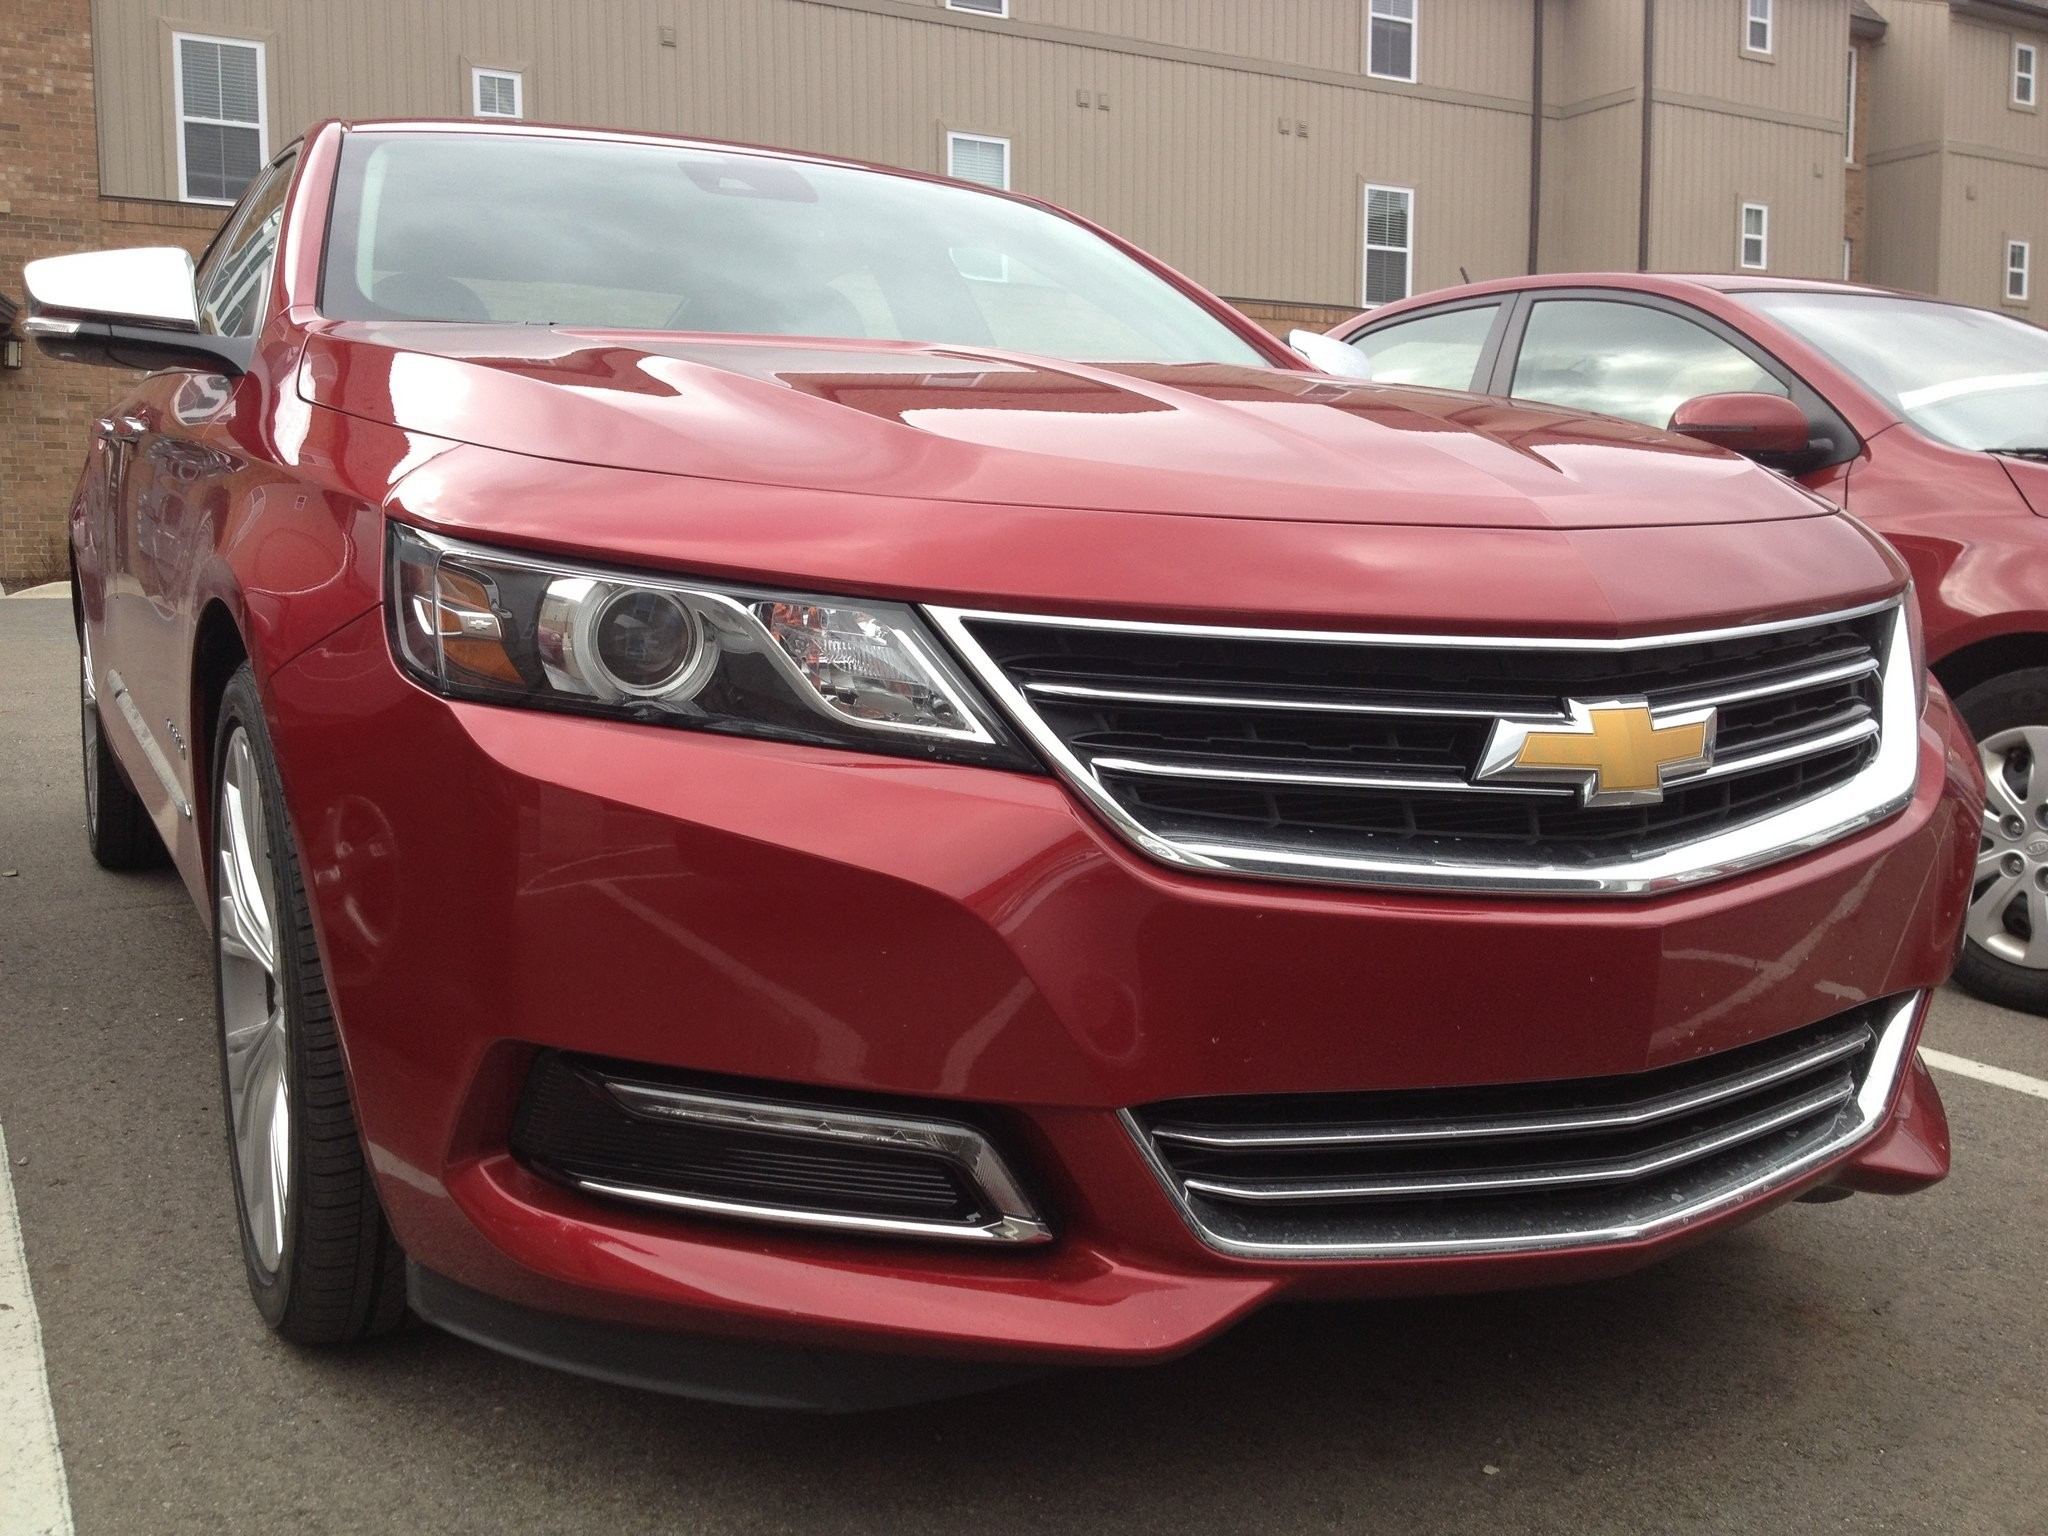 Auto Review | 2014 Chevy Impala a beautiful head turner inside, out -  mlive.com